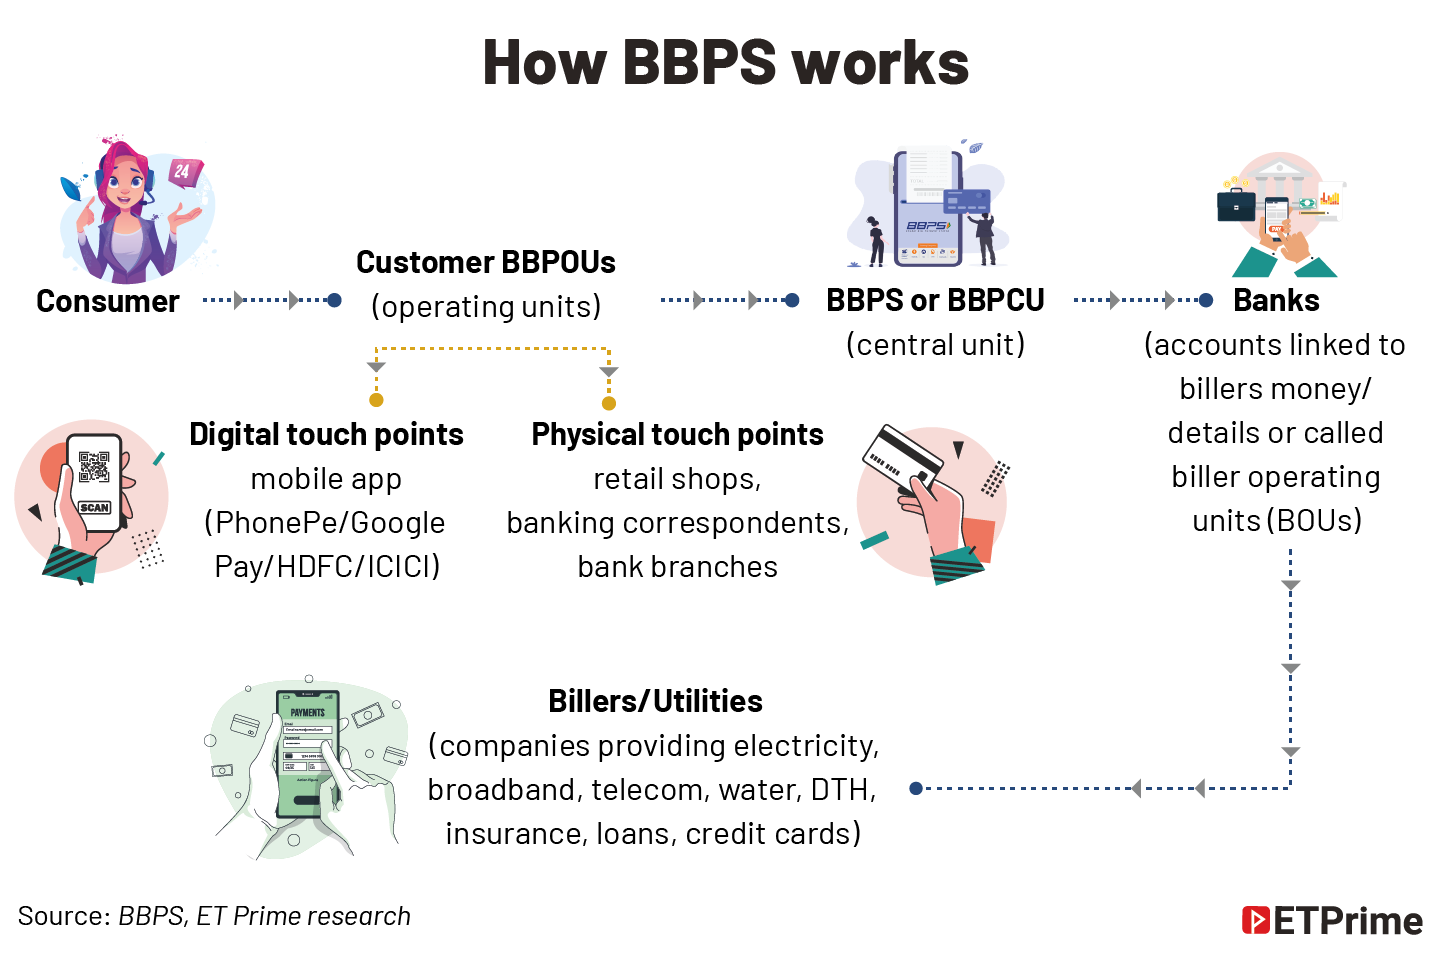 How BBPS works@2x